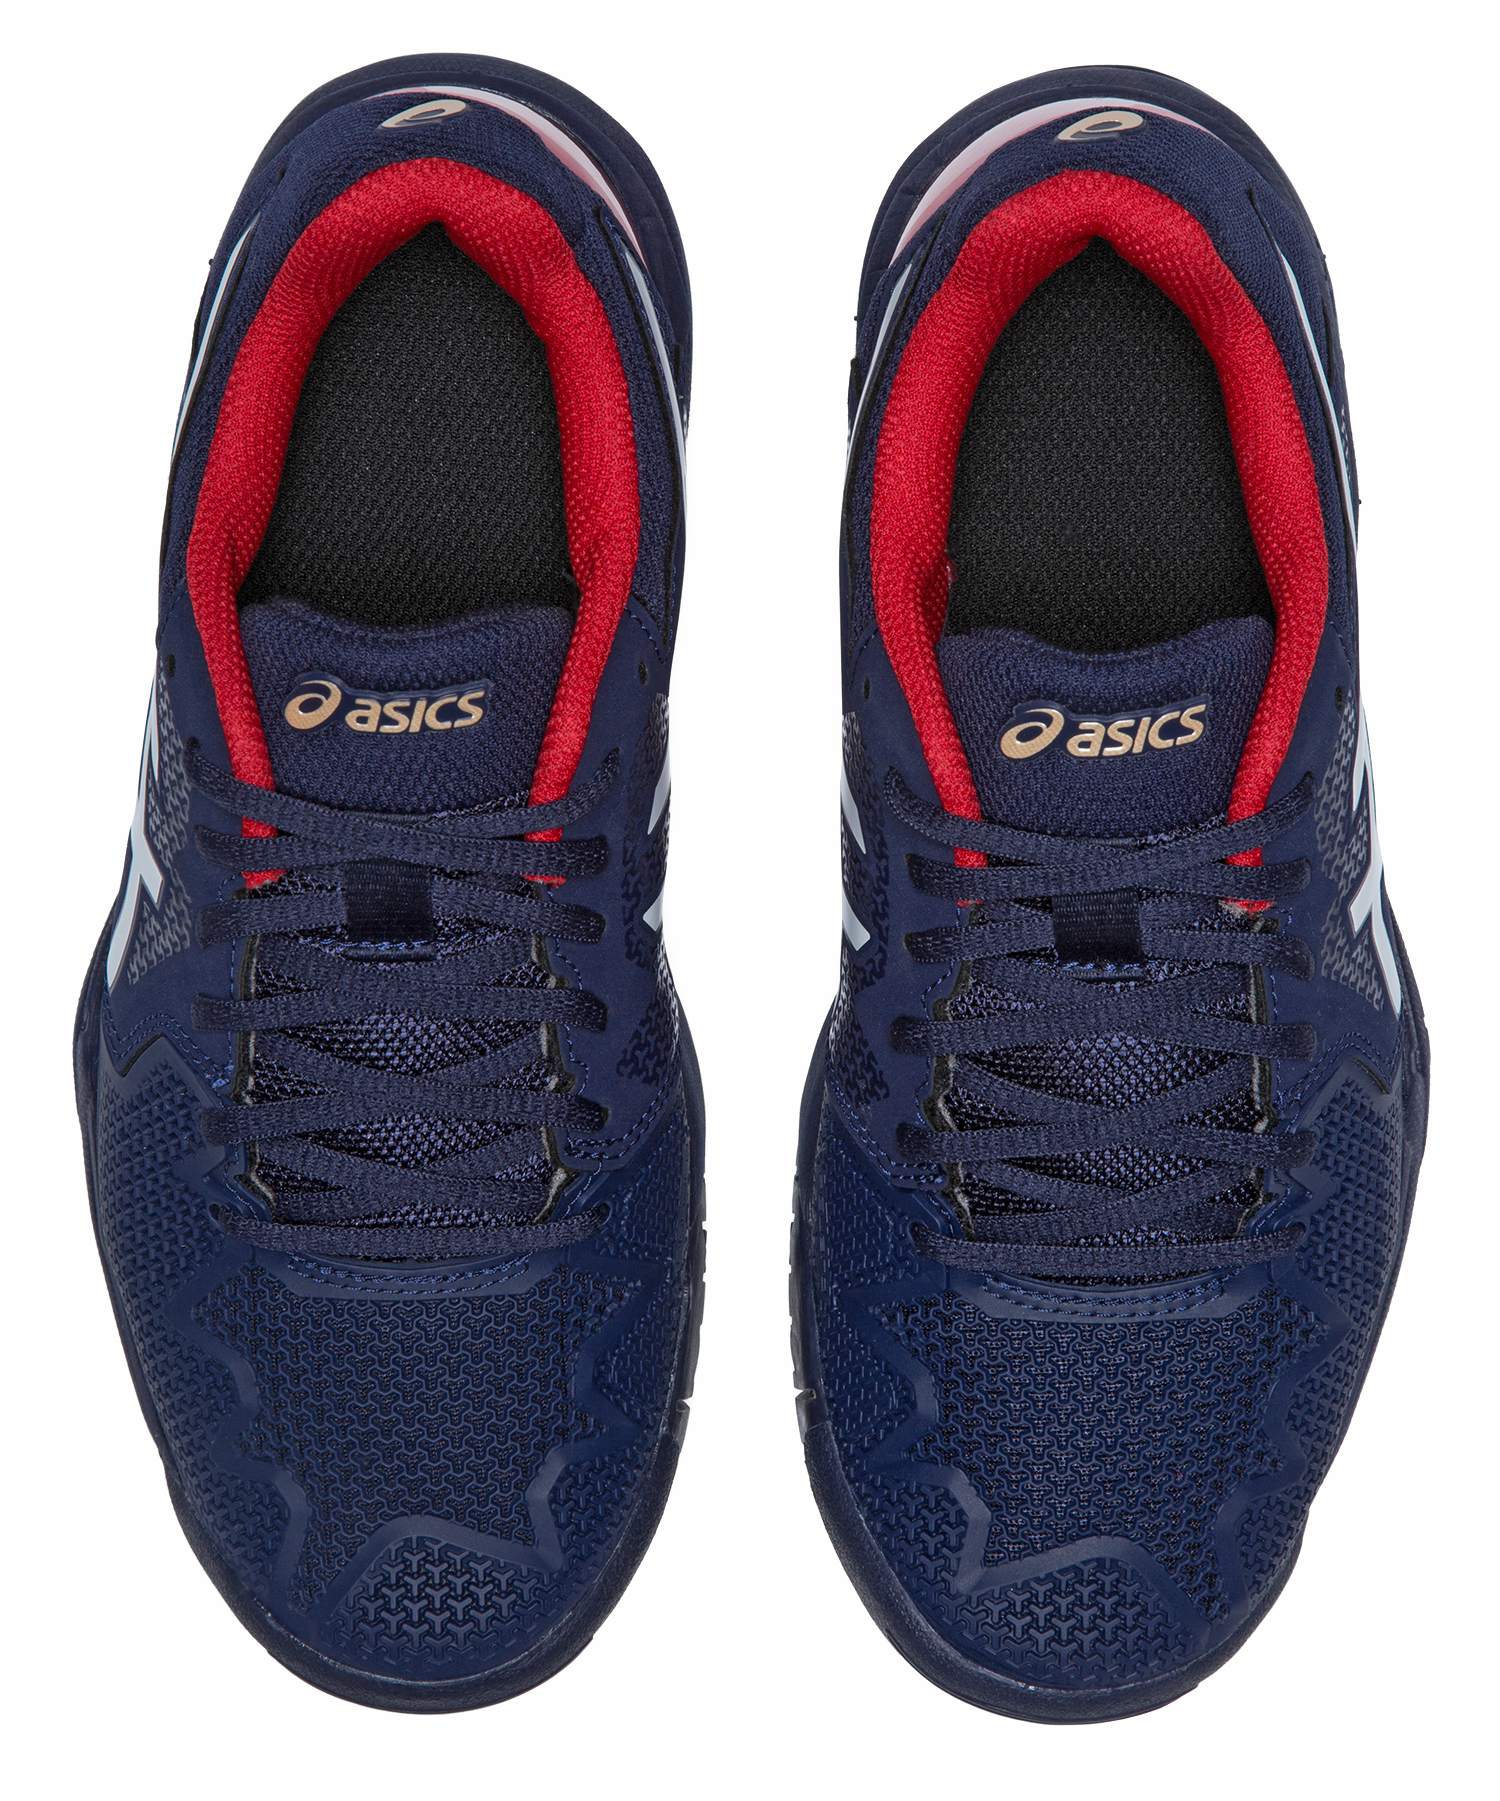 SCARPA DA TENNIS DA BAMBINO ASICS GEL RESOLUTION 8 GS BLU